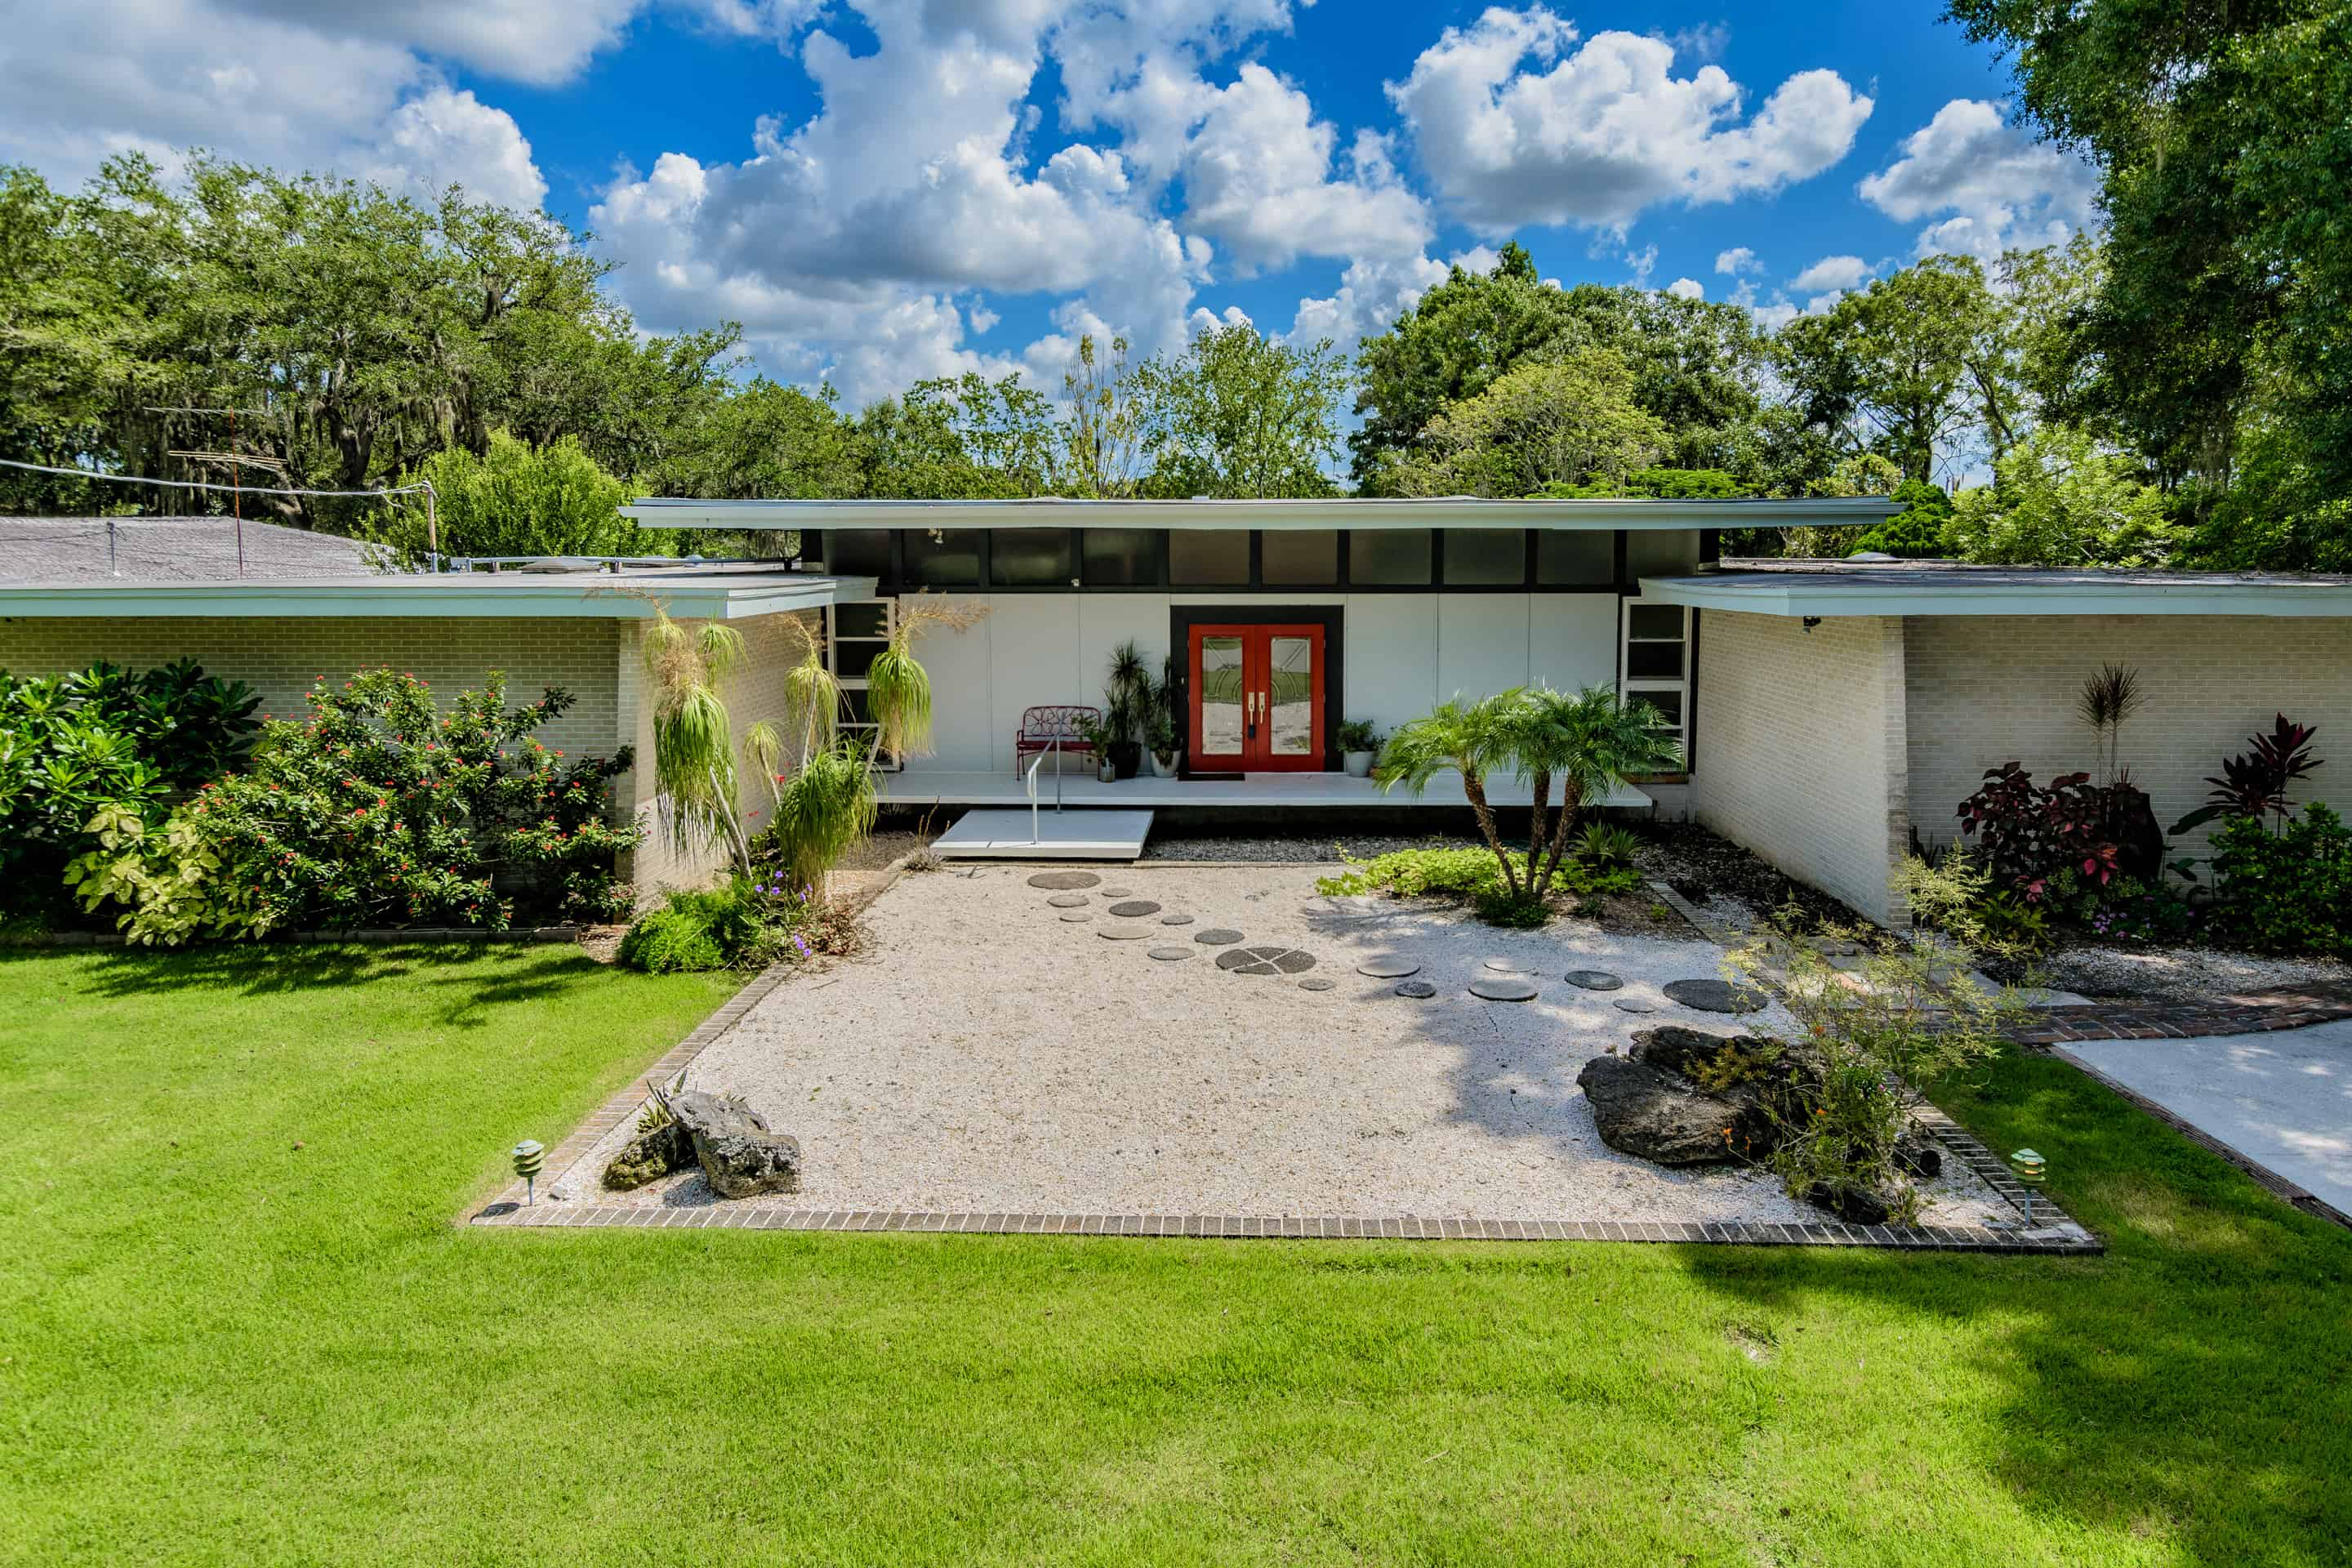 Frank Depasquale Mid Century Home On The River In Tampa on New Homes Dana Point